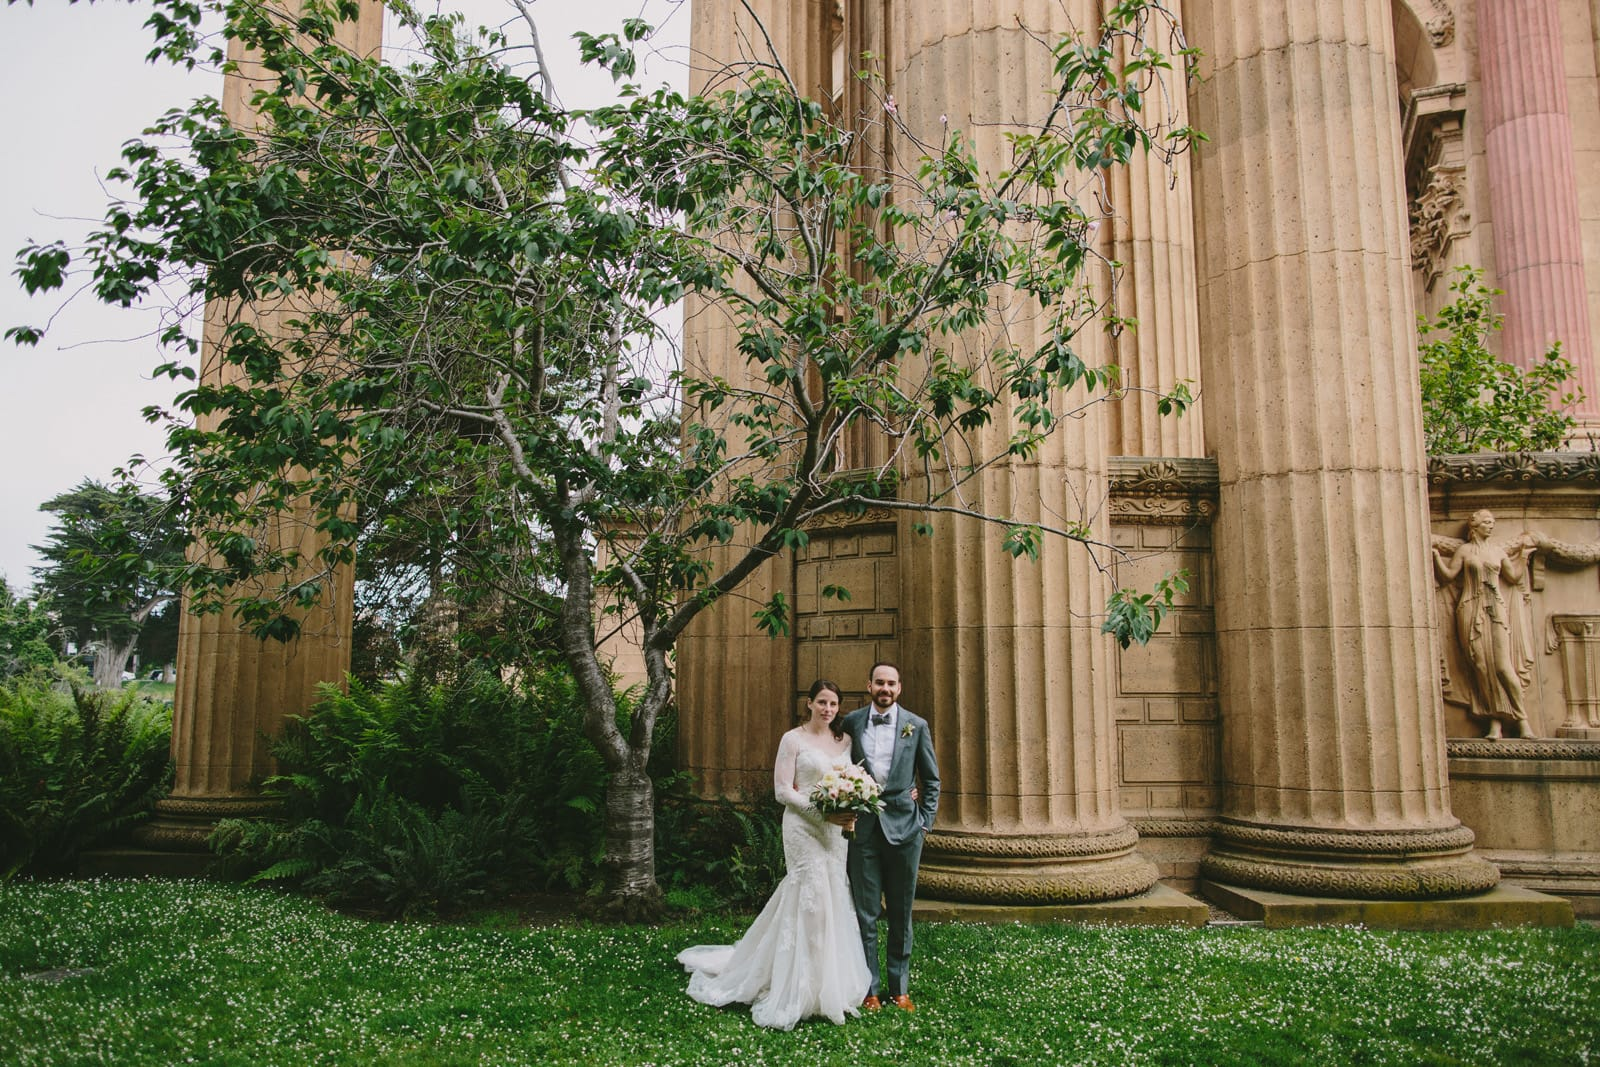 palace_of_fine_arts_wedding_056